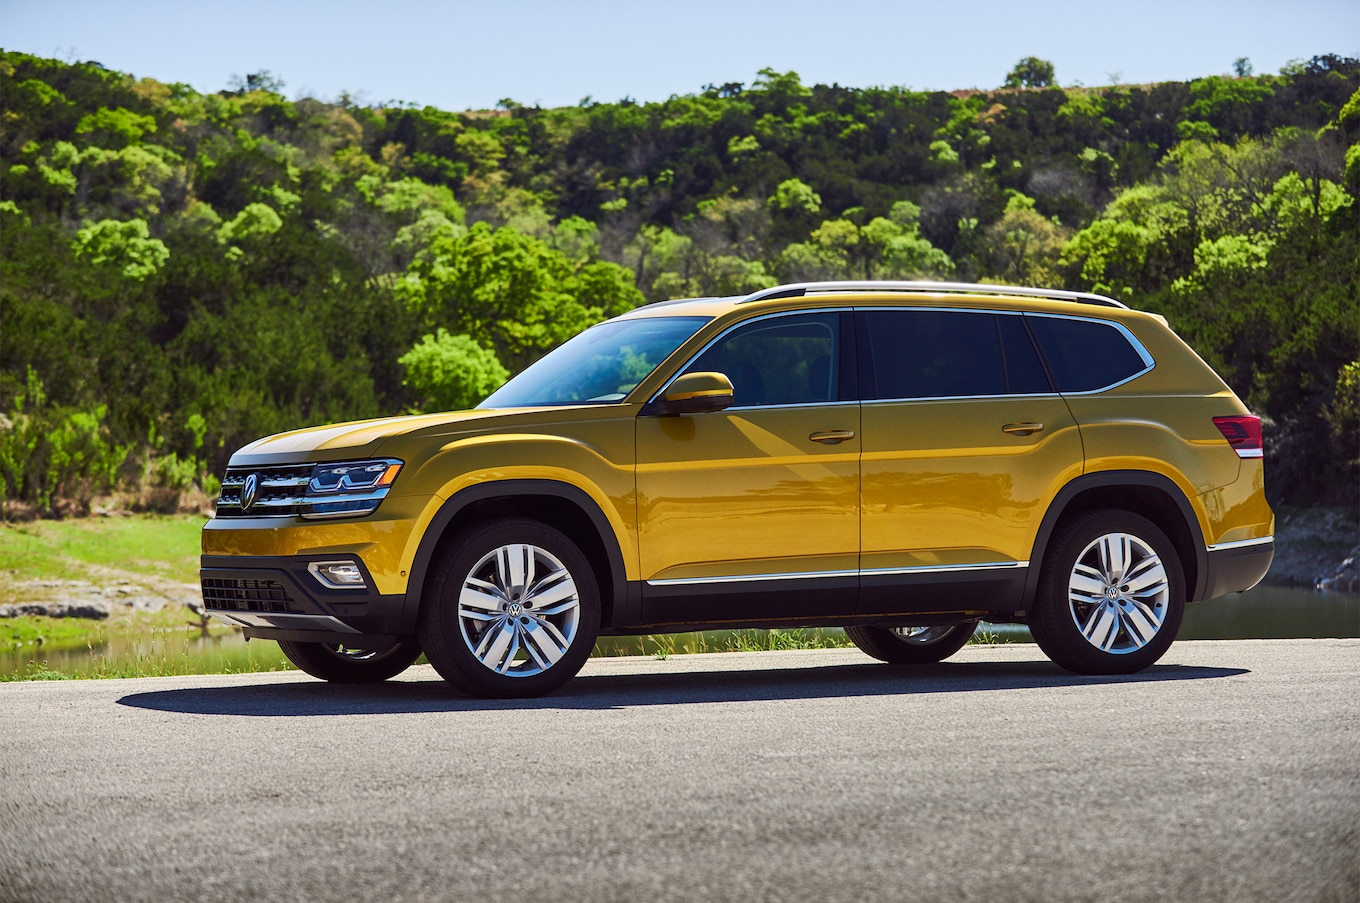 2018 Volkswagen Atlas front three quarter 08